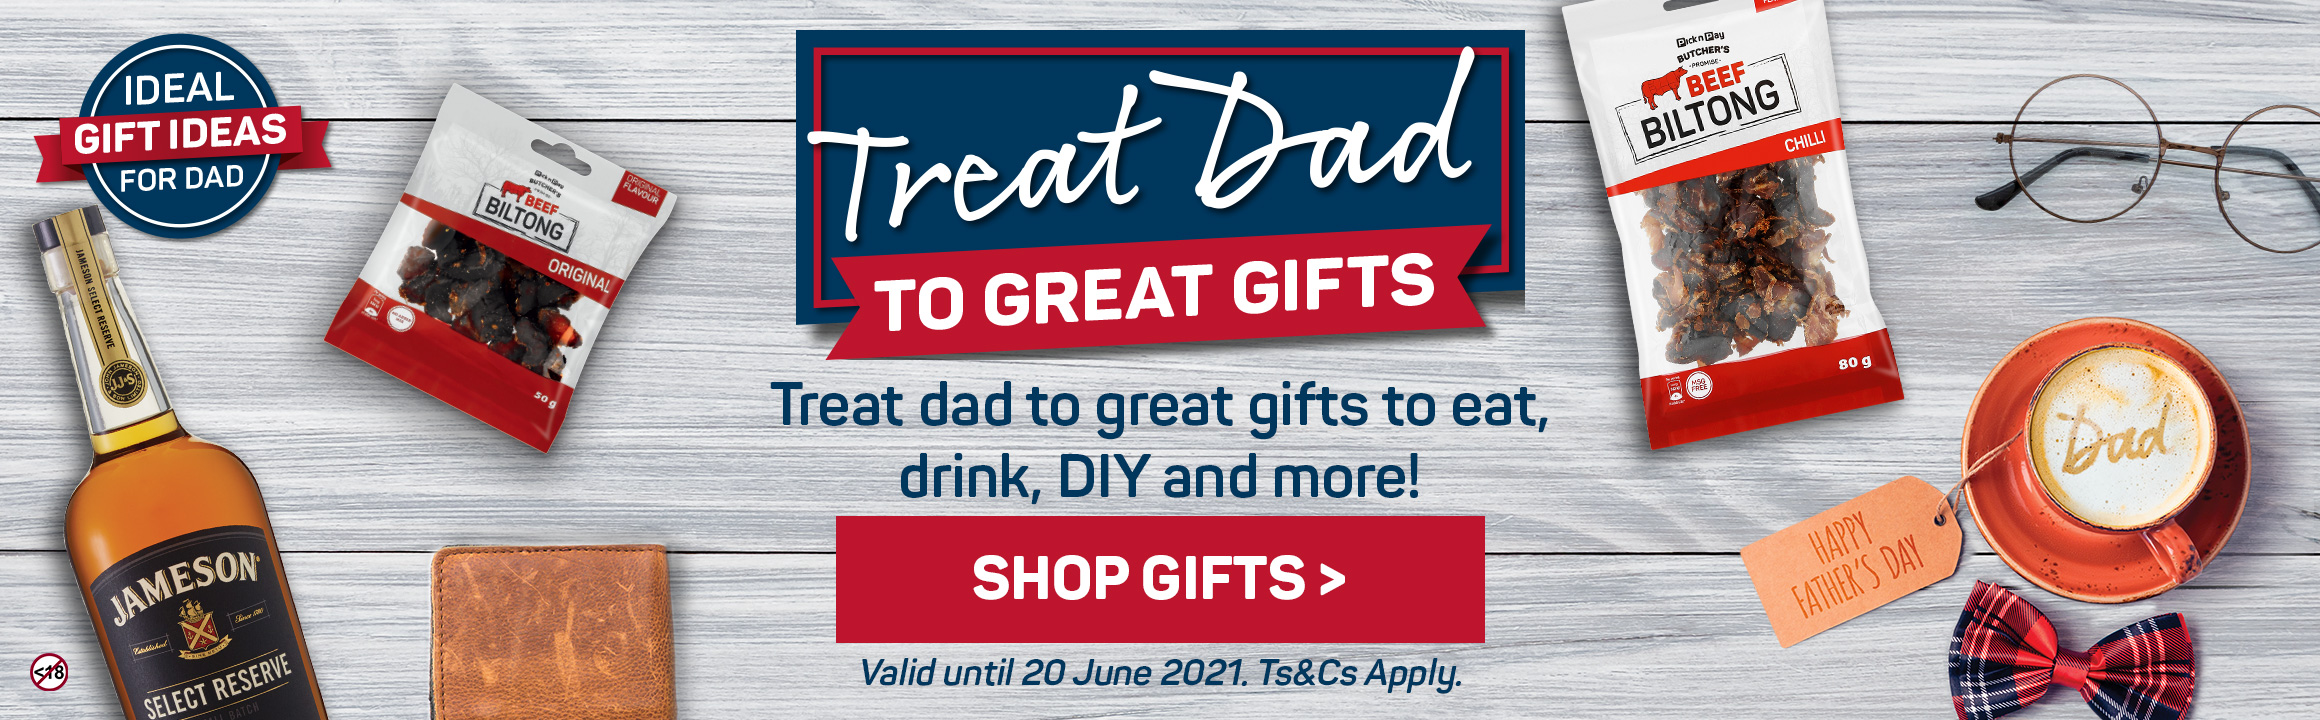 Treat dad to great gifts to eat, drink, DIY and more!